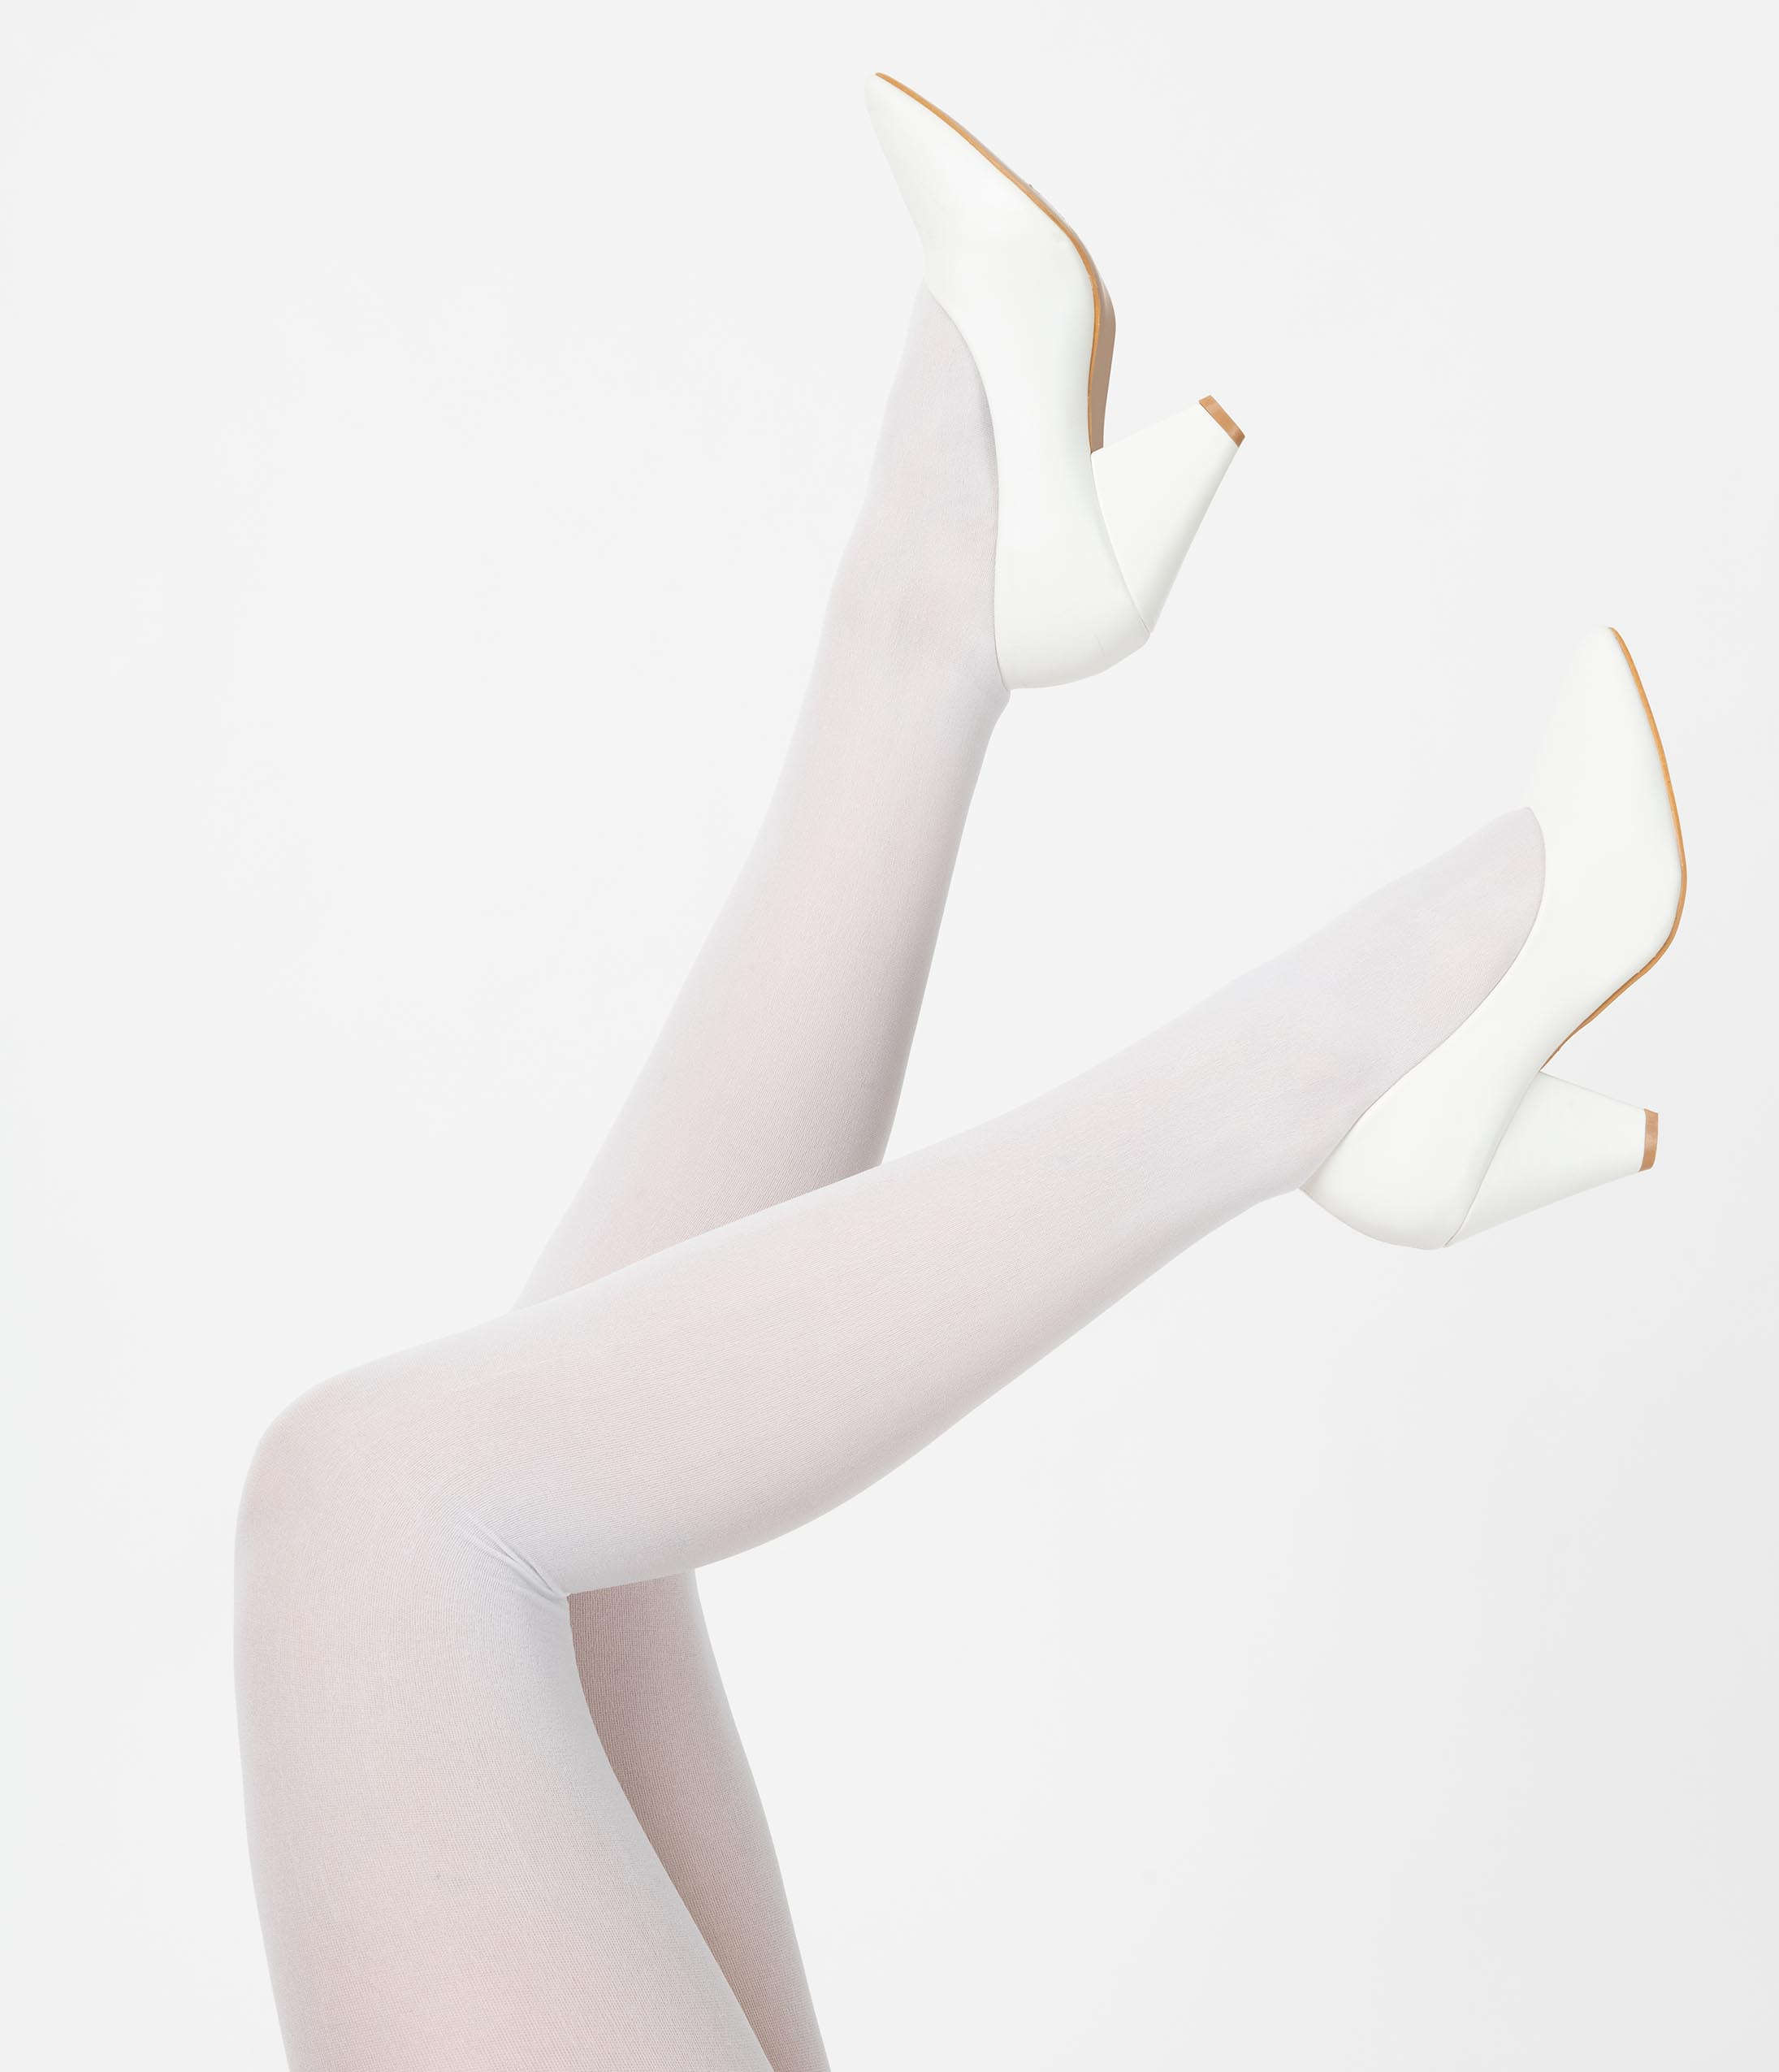 1920s Style Stockings, Tights, Fishnets & Socks White Nylon Opaque Tights $14.00 AT vintagedancer.com